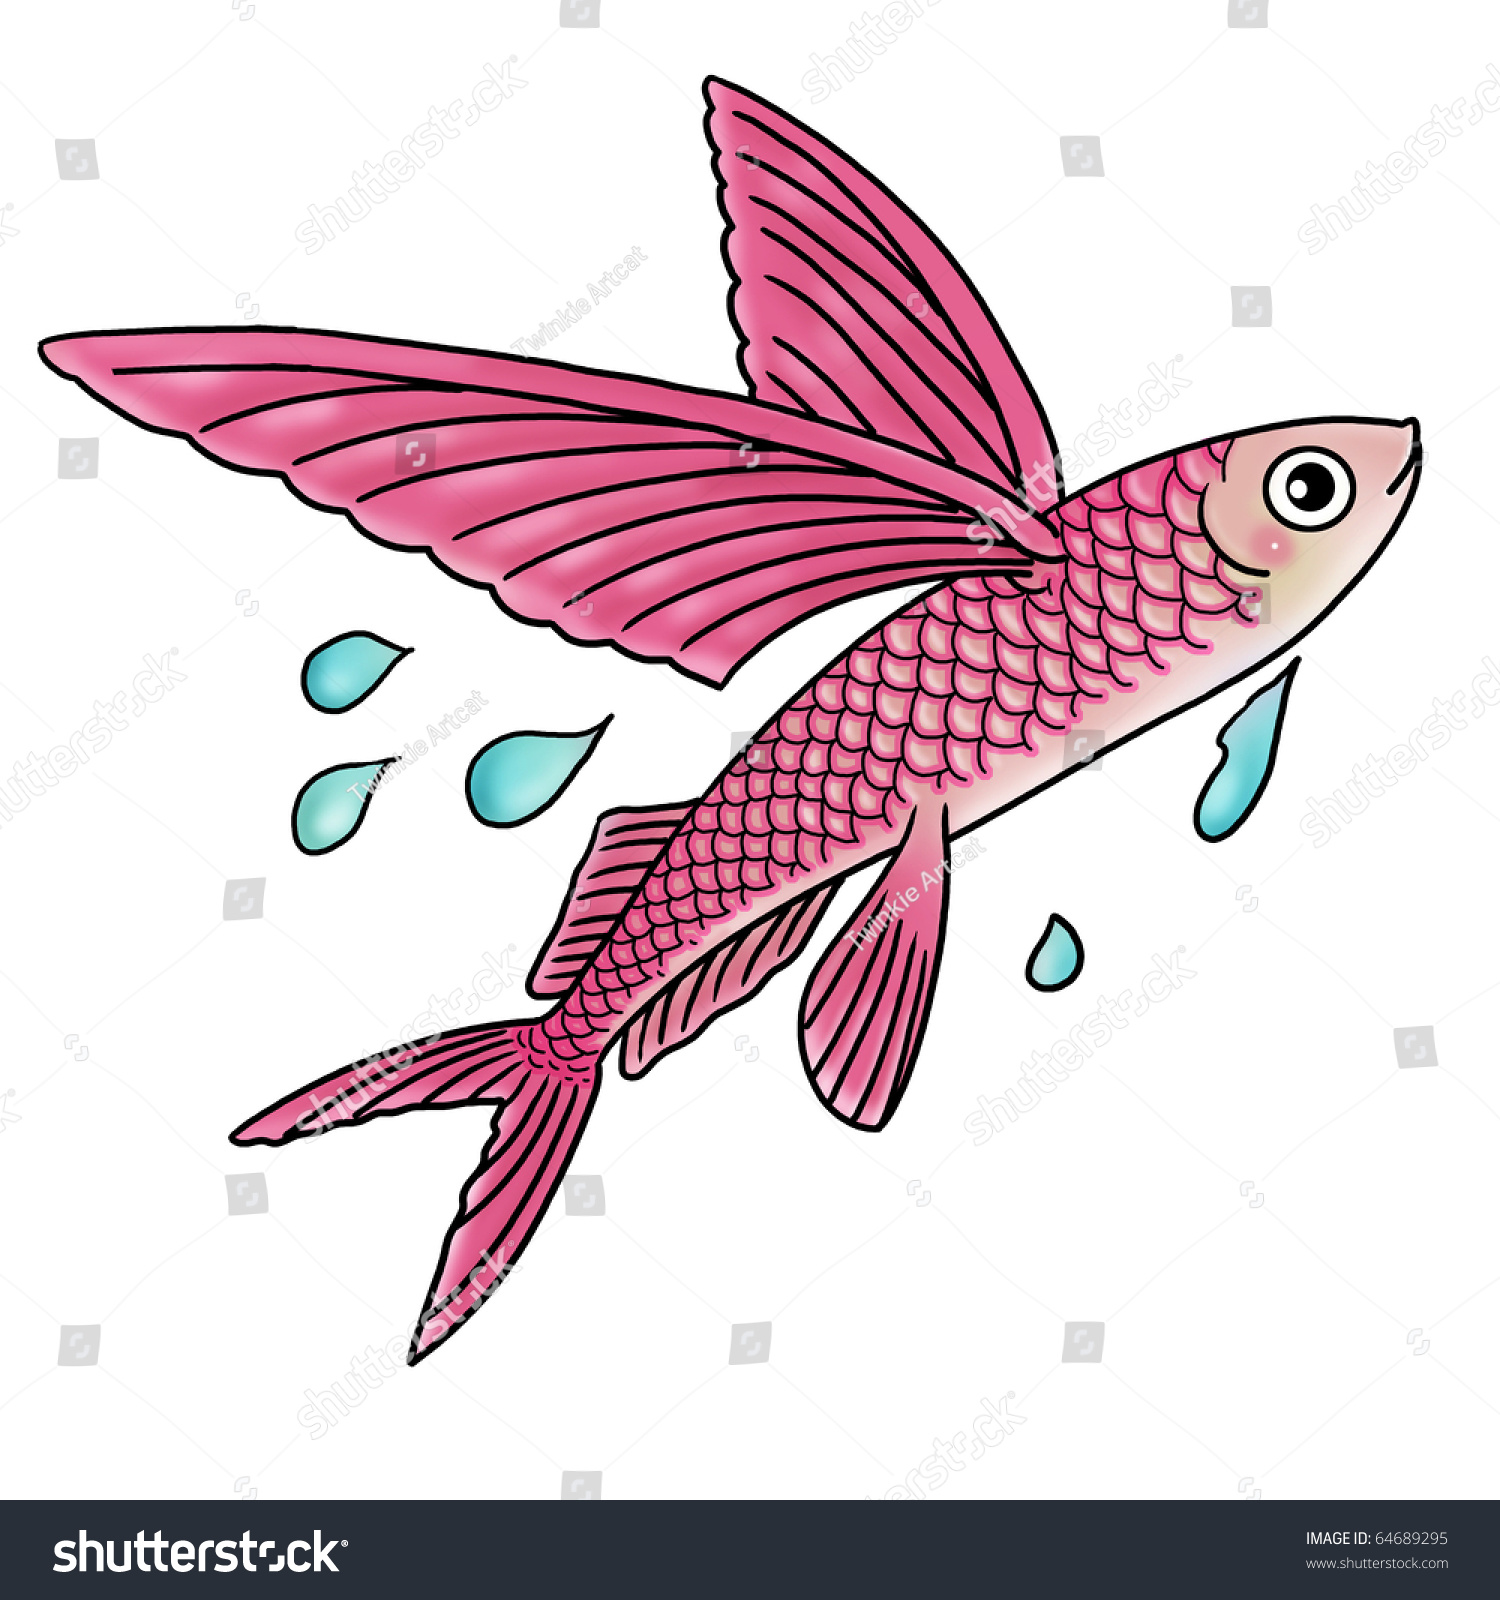 cartoon illustration flying fish stock illustration